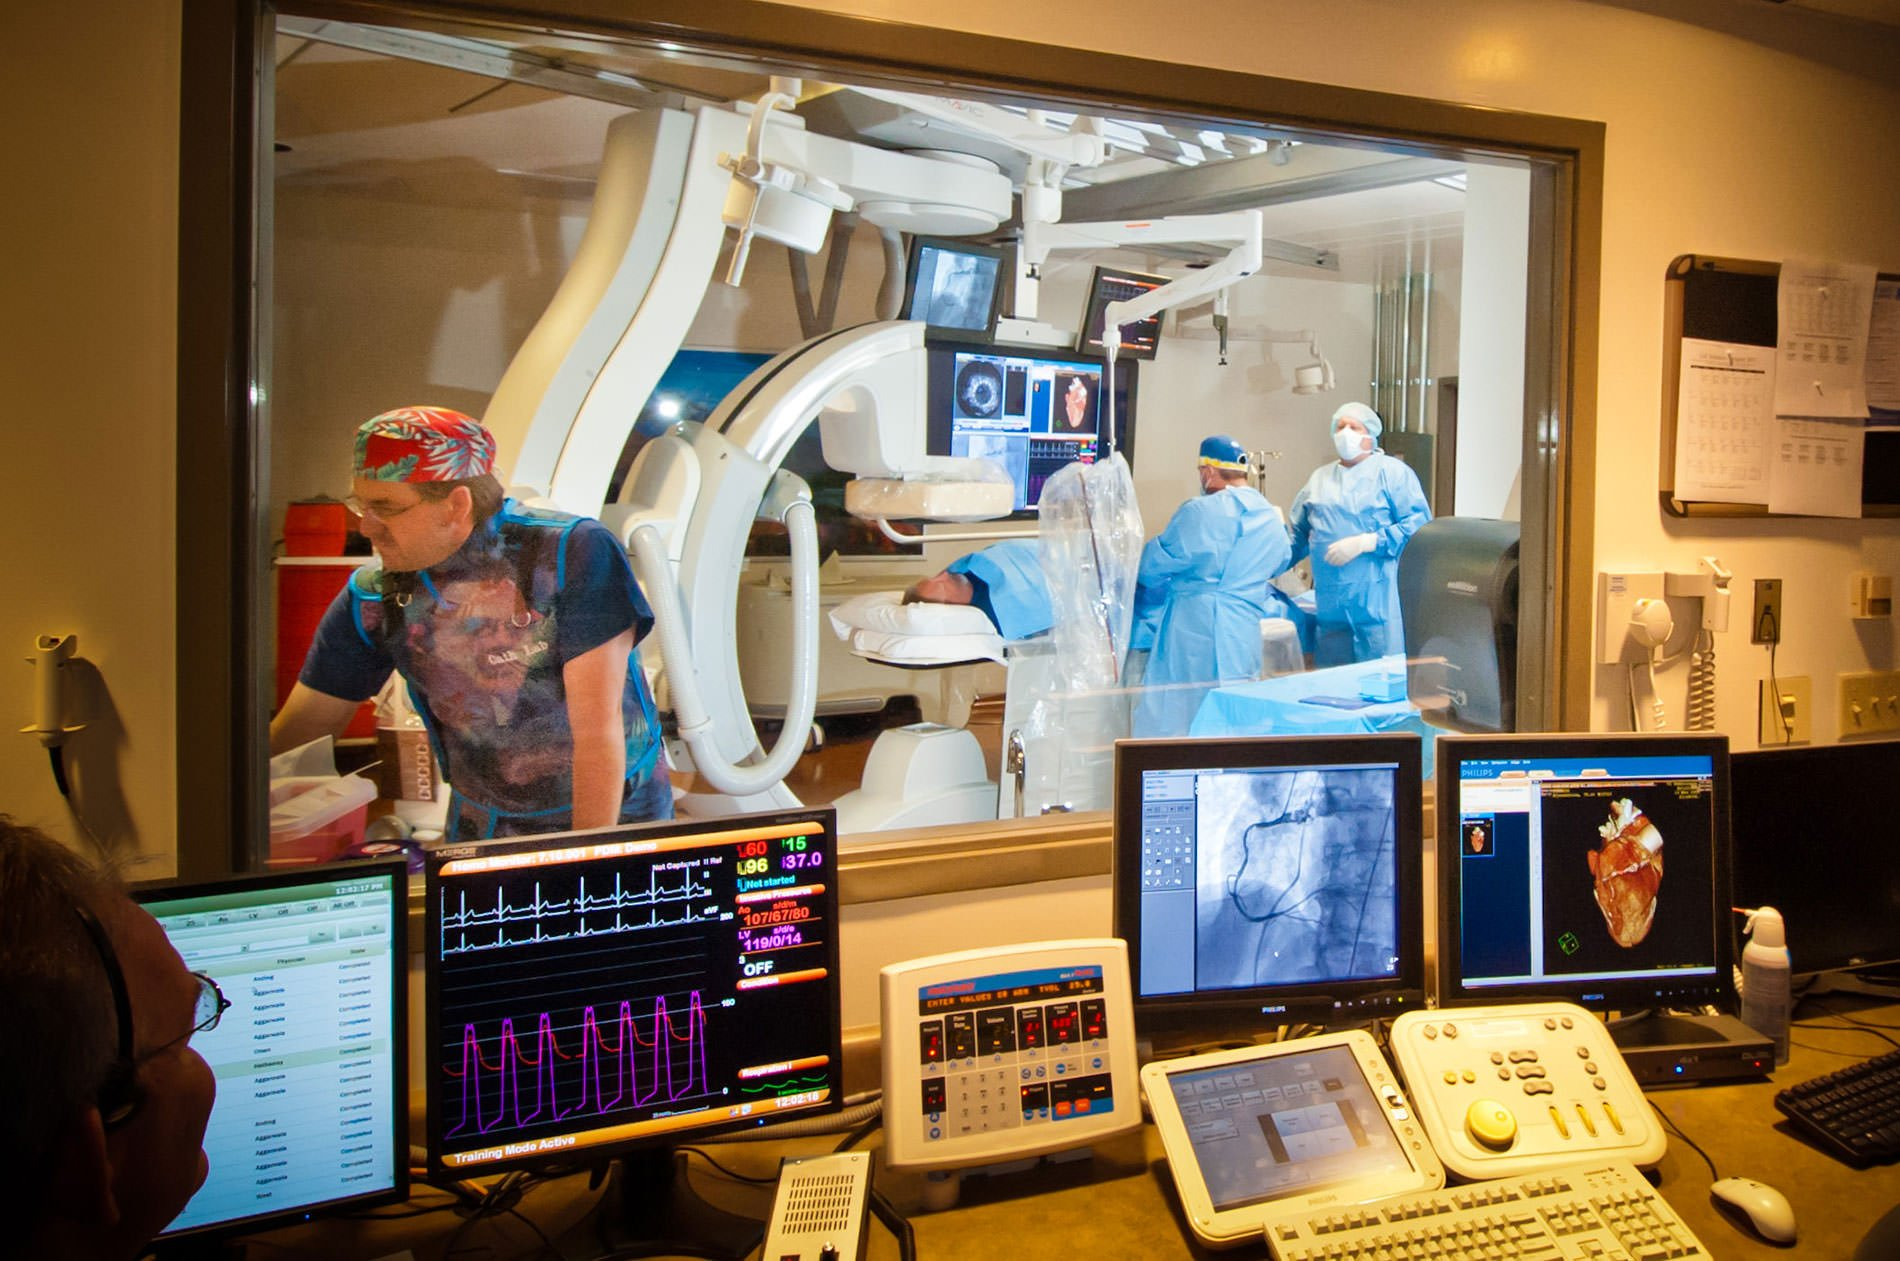 Workers in a Cath lab working on a patient for Ogden commercial photography.